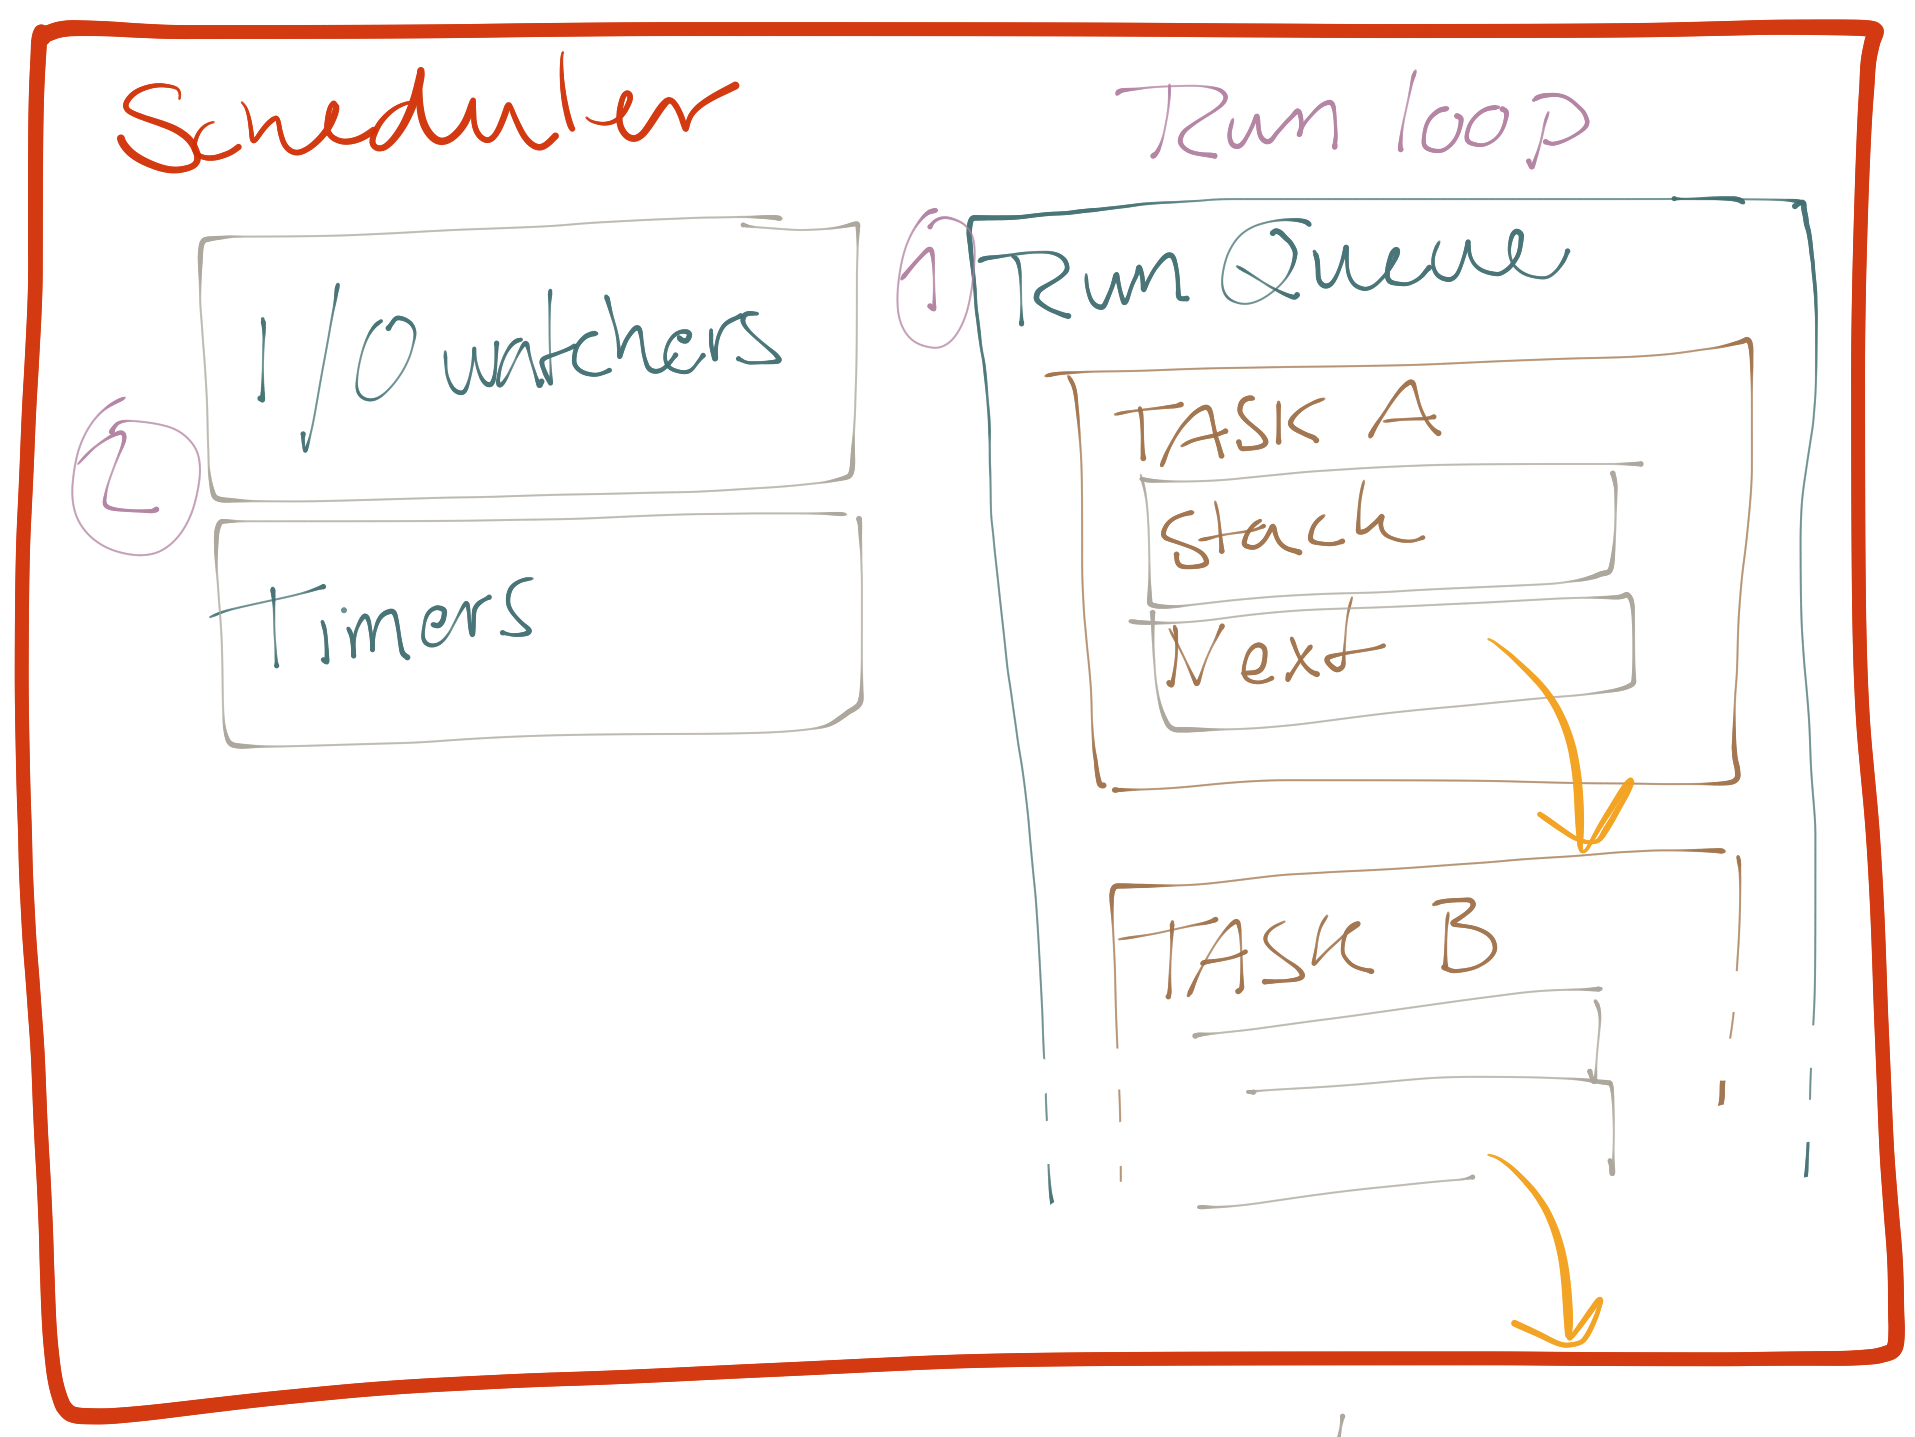 Sketch of a scheduler